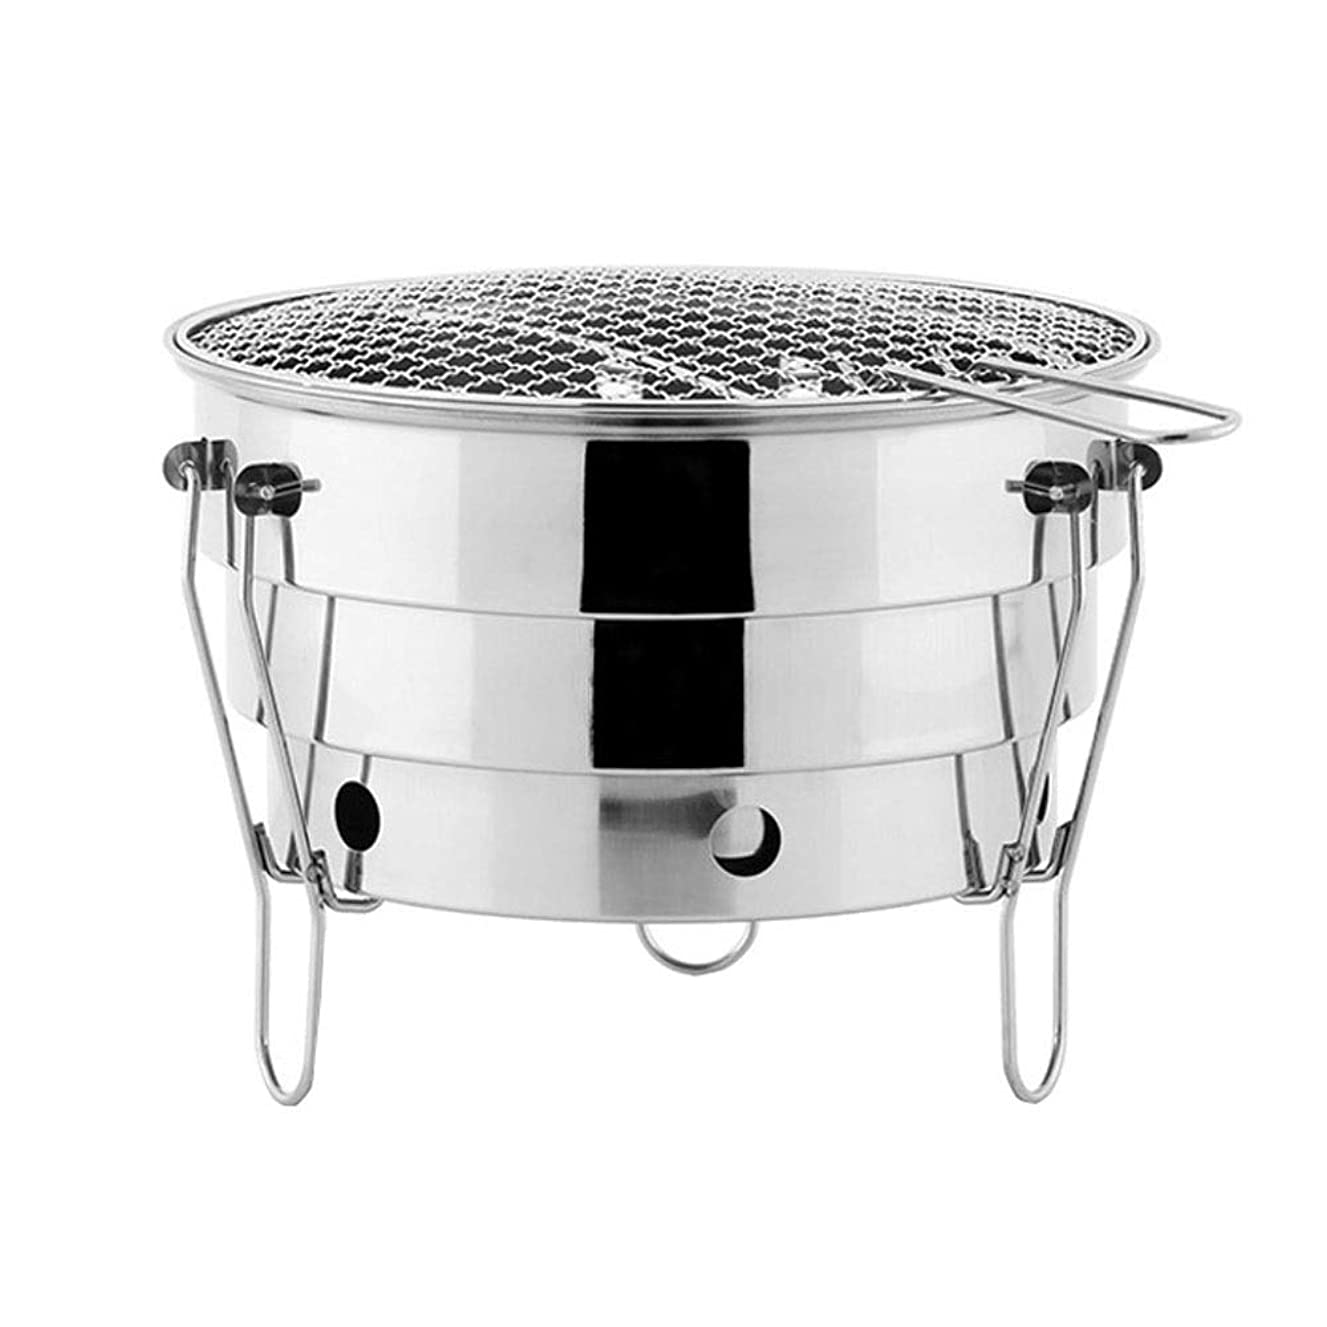 ZK Small Barbecue Stove, Stainless Steel Outdoor Portable BBQ Barbecue Grill for Camping Picnic, Folding Charcoal Grill, Camping Equipment, Camping Kitchen